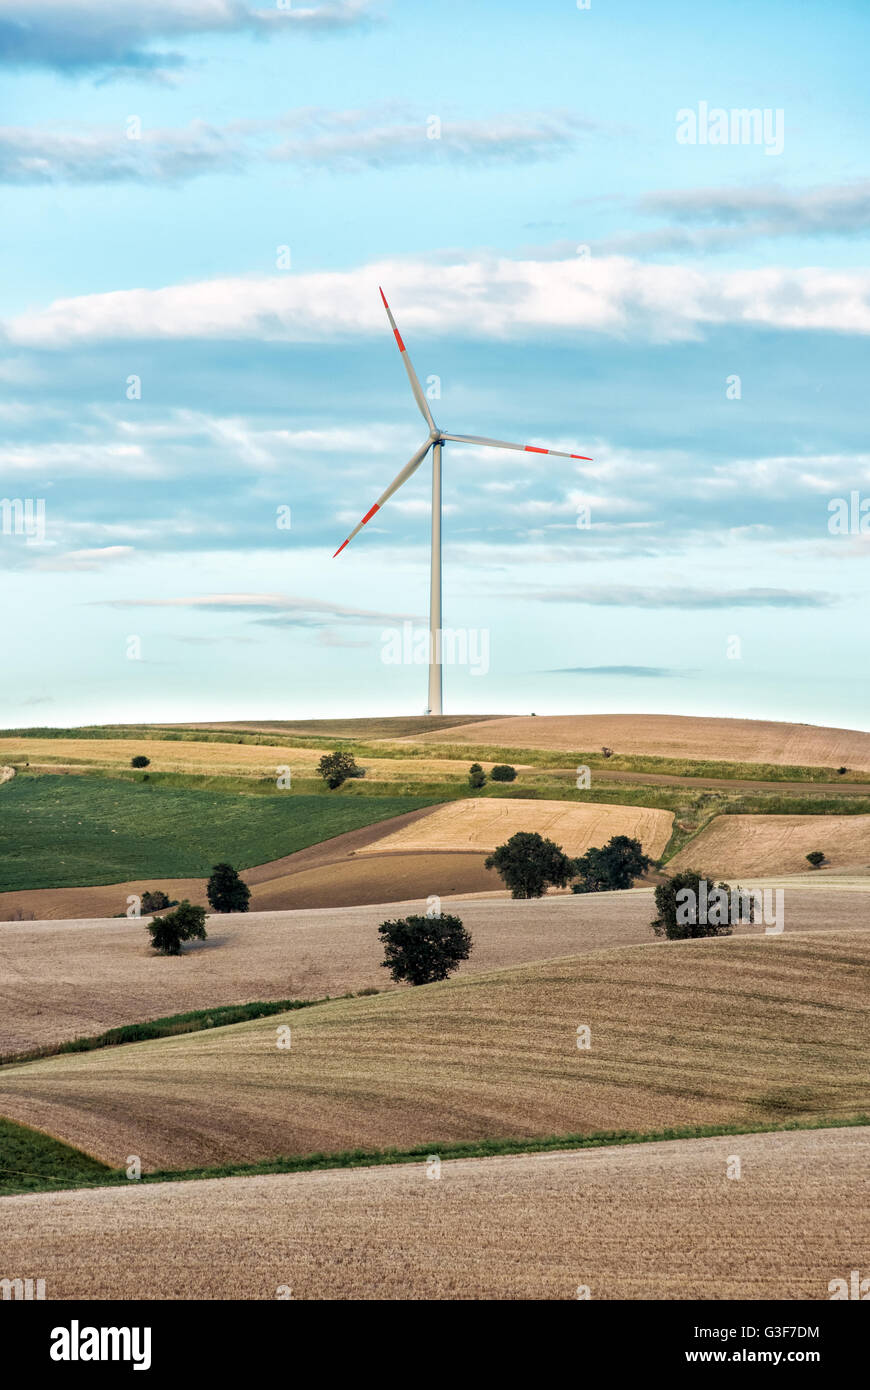 Rolling agricultural hills with a single wind turbine in the distance on the horizon providing renewable electricity - Stock Image